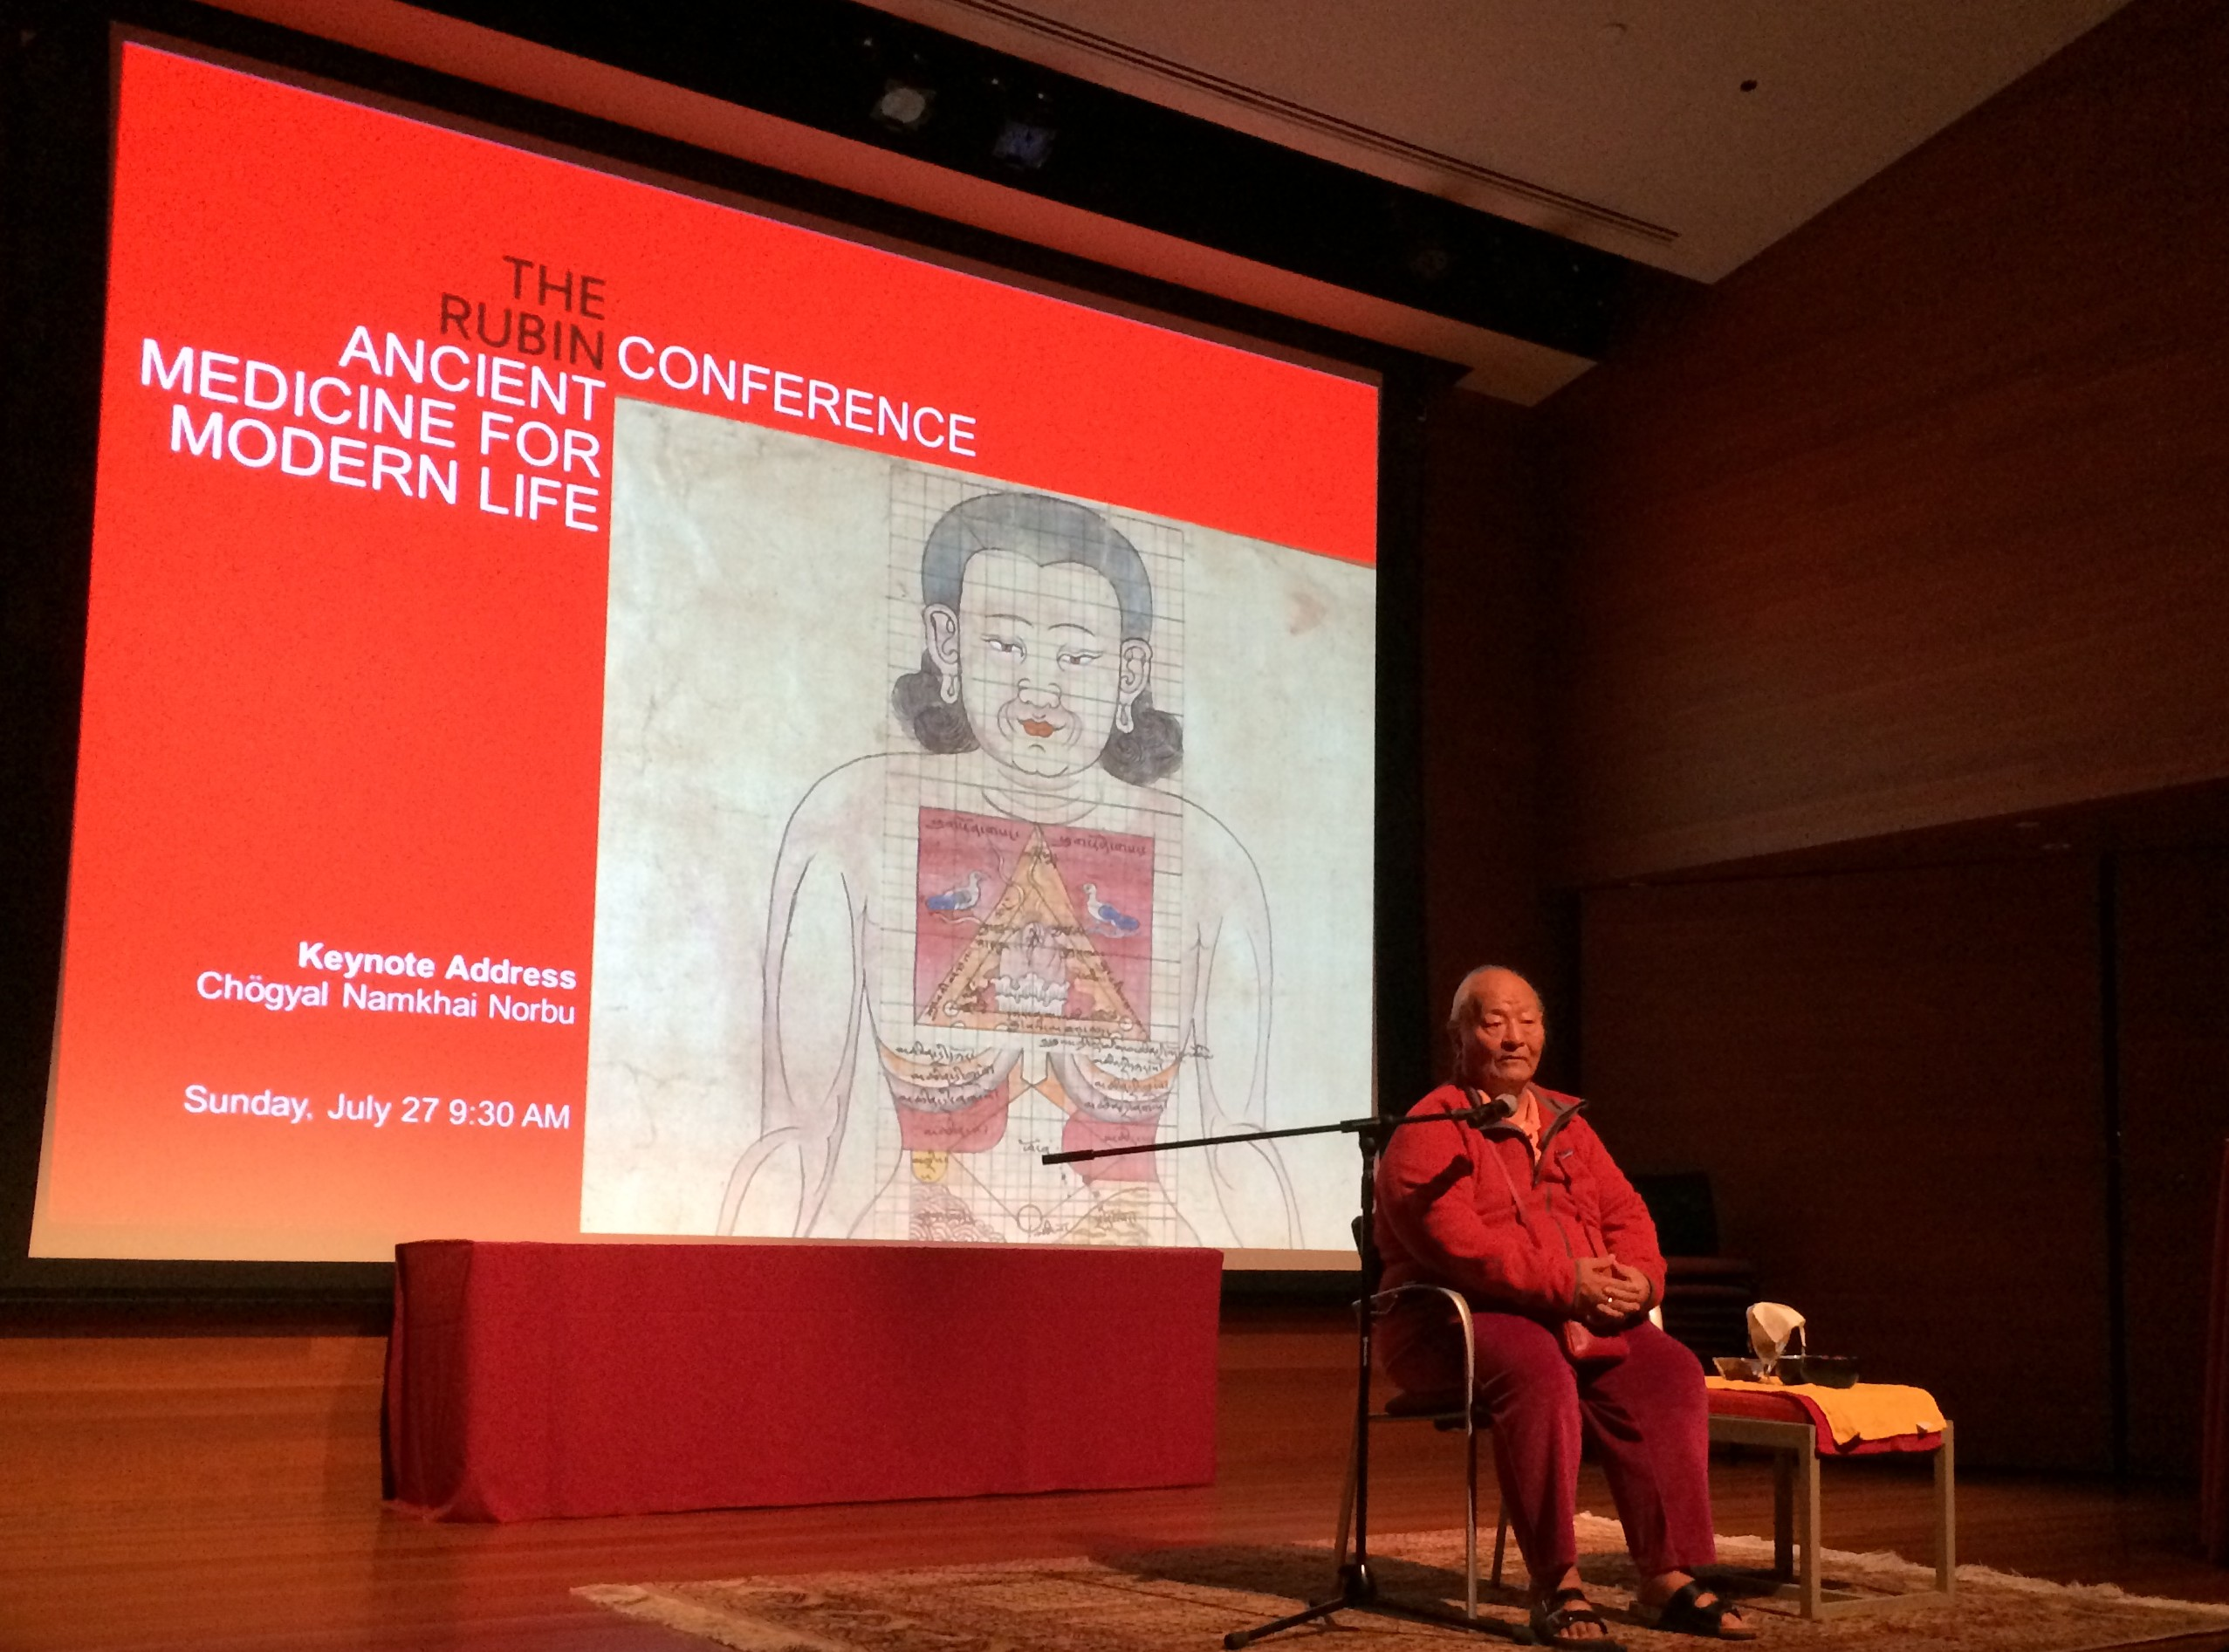 Chögyal Namkhai Norbu delivers Keynote Address